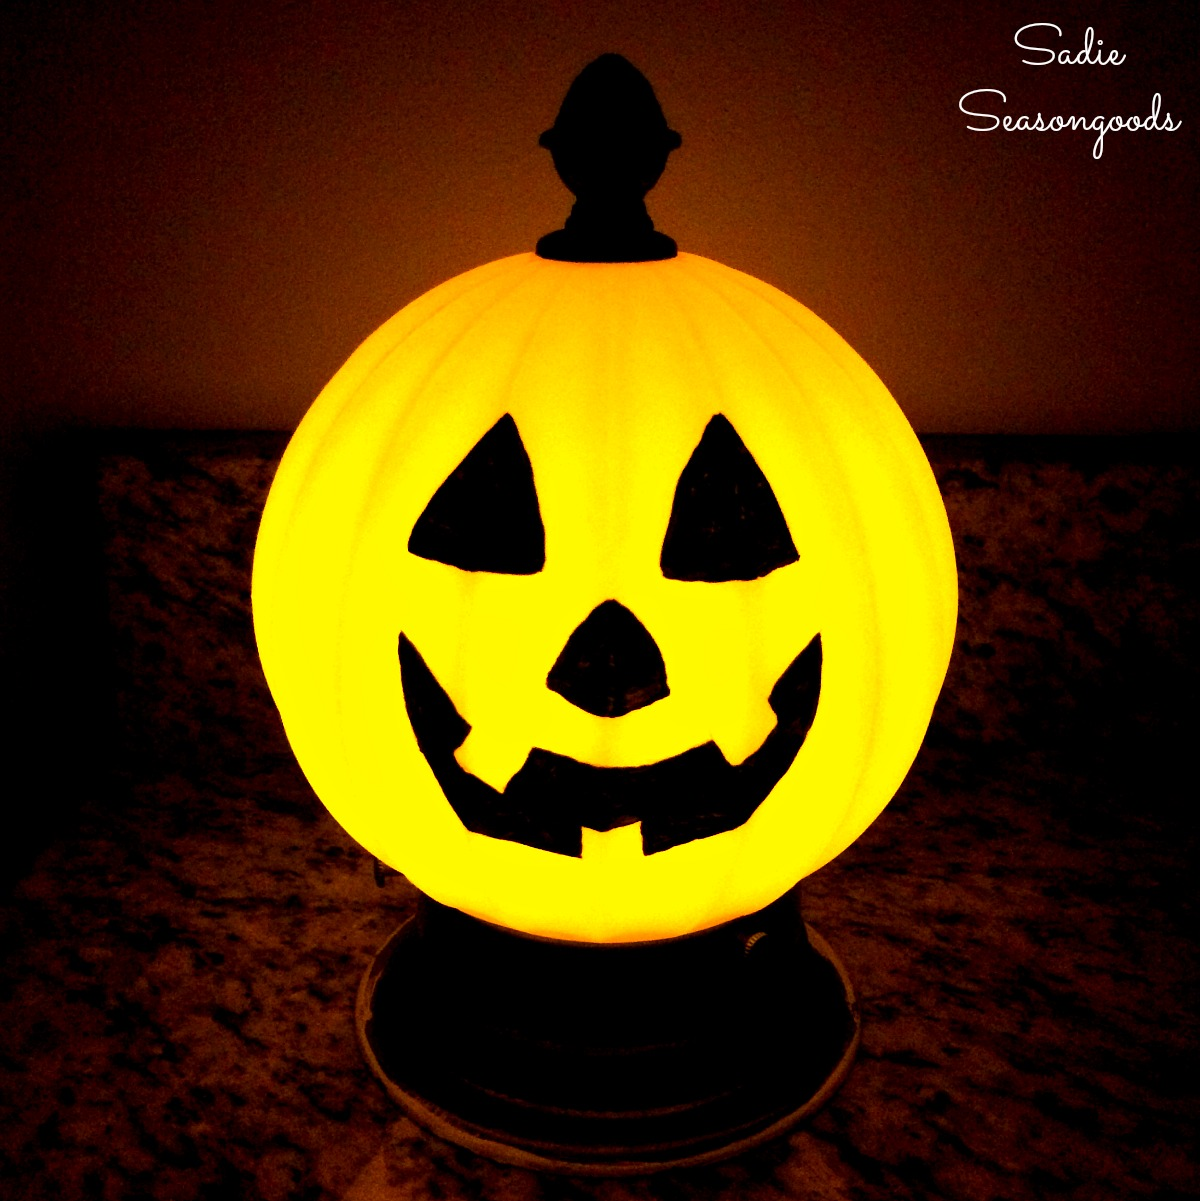 Light Up Pumpkin and Jack-o-Lantern Light for Halloween